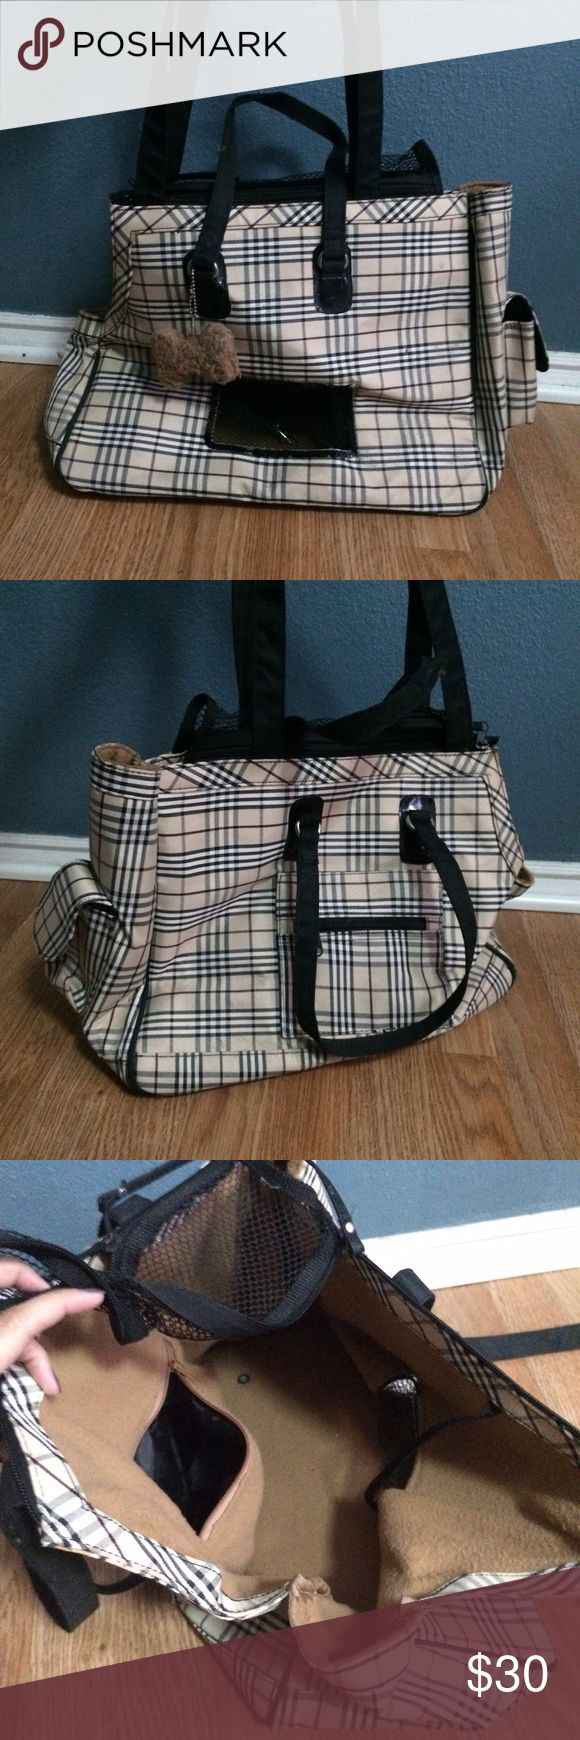 Plaid Pet Bag Plaid dog carrier perfect for carrying around small breeds like chihuahuas, yorkies, pomeranians, etc. Features 3 pockets (2 on the outside, 1 on the inside). Cute design gives it a classy look that's perfect for all seasons. Bought it a while back and used it when my baby girl was a little pug puppy.  💟 I'm a trusted seller and a fast shipper - I ship same day! 💟 Prices are negotiable but I don't trade! I'm reasonable, I don't block/shut down offers! 💟 Bundle to save on…